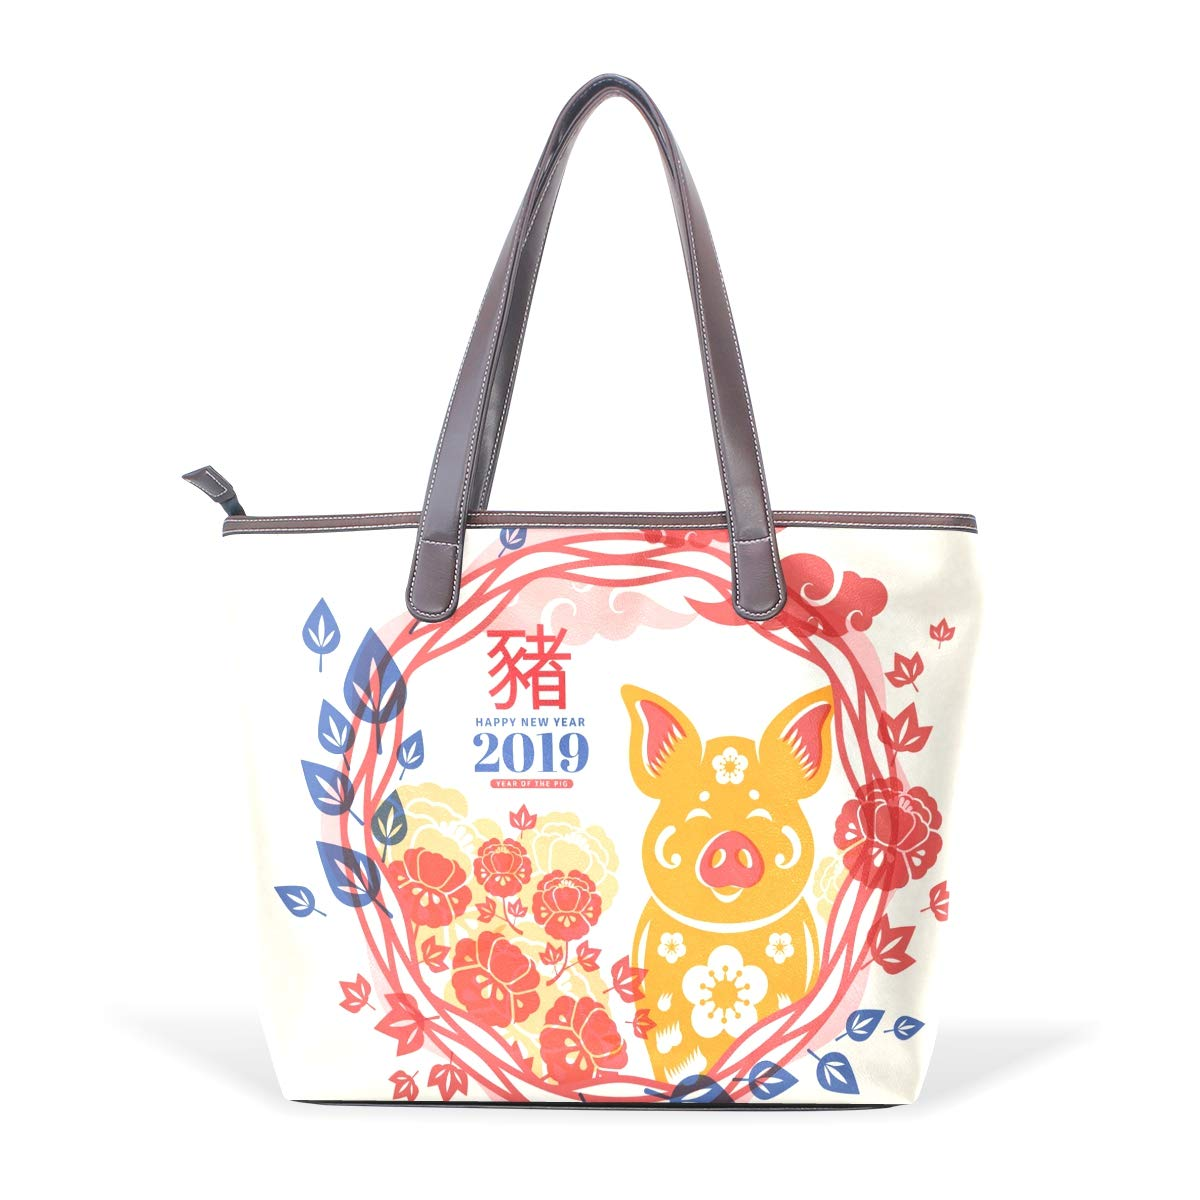 Sports Gym Globalwells Flower Pattern Heavy Duty Travel Luggage Totes Handbag Beach Bag Small Weekend Duffel Bag for Beach